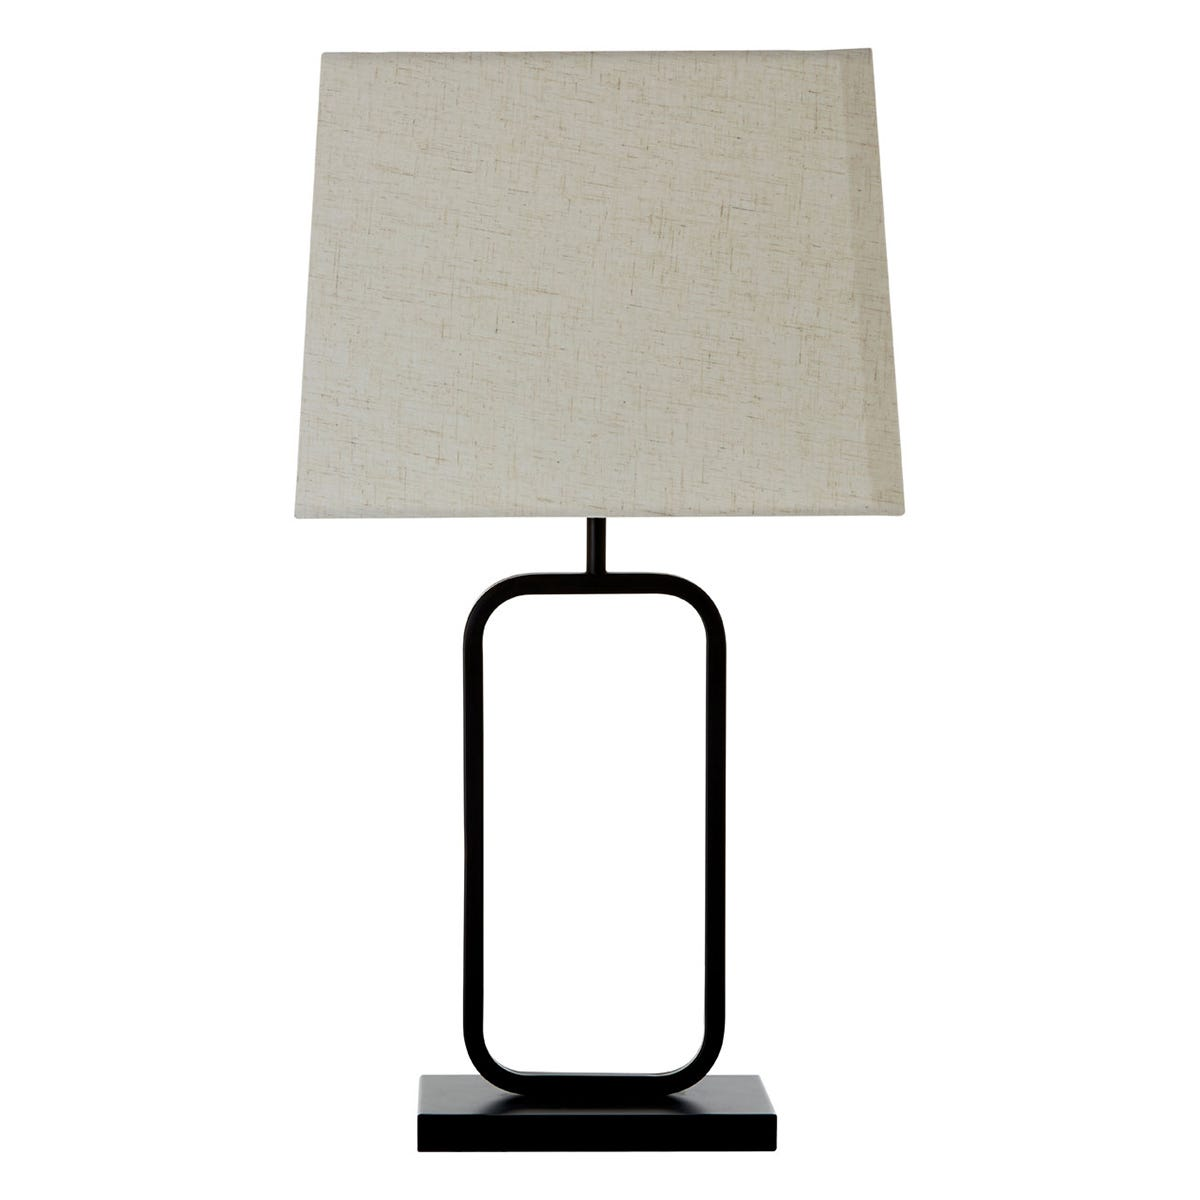 Premier Housewares Lucas Table Lamp in Black Metal with Fabric Shade